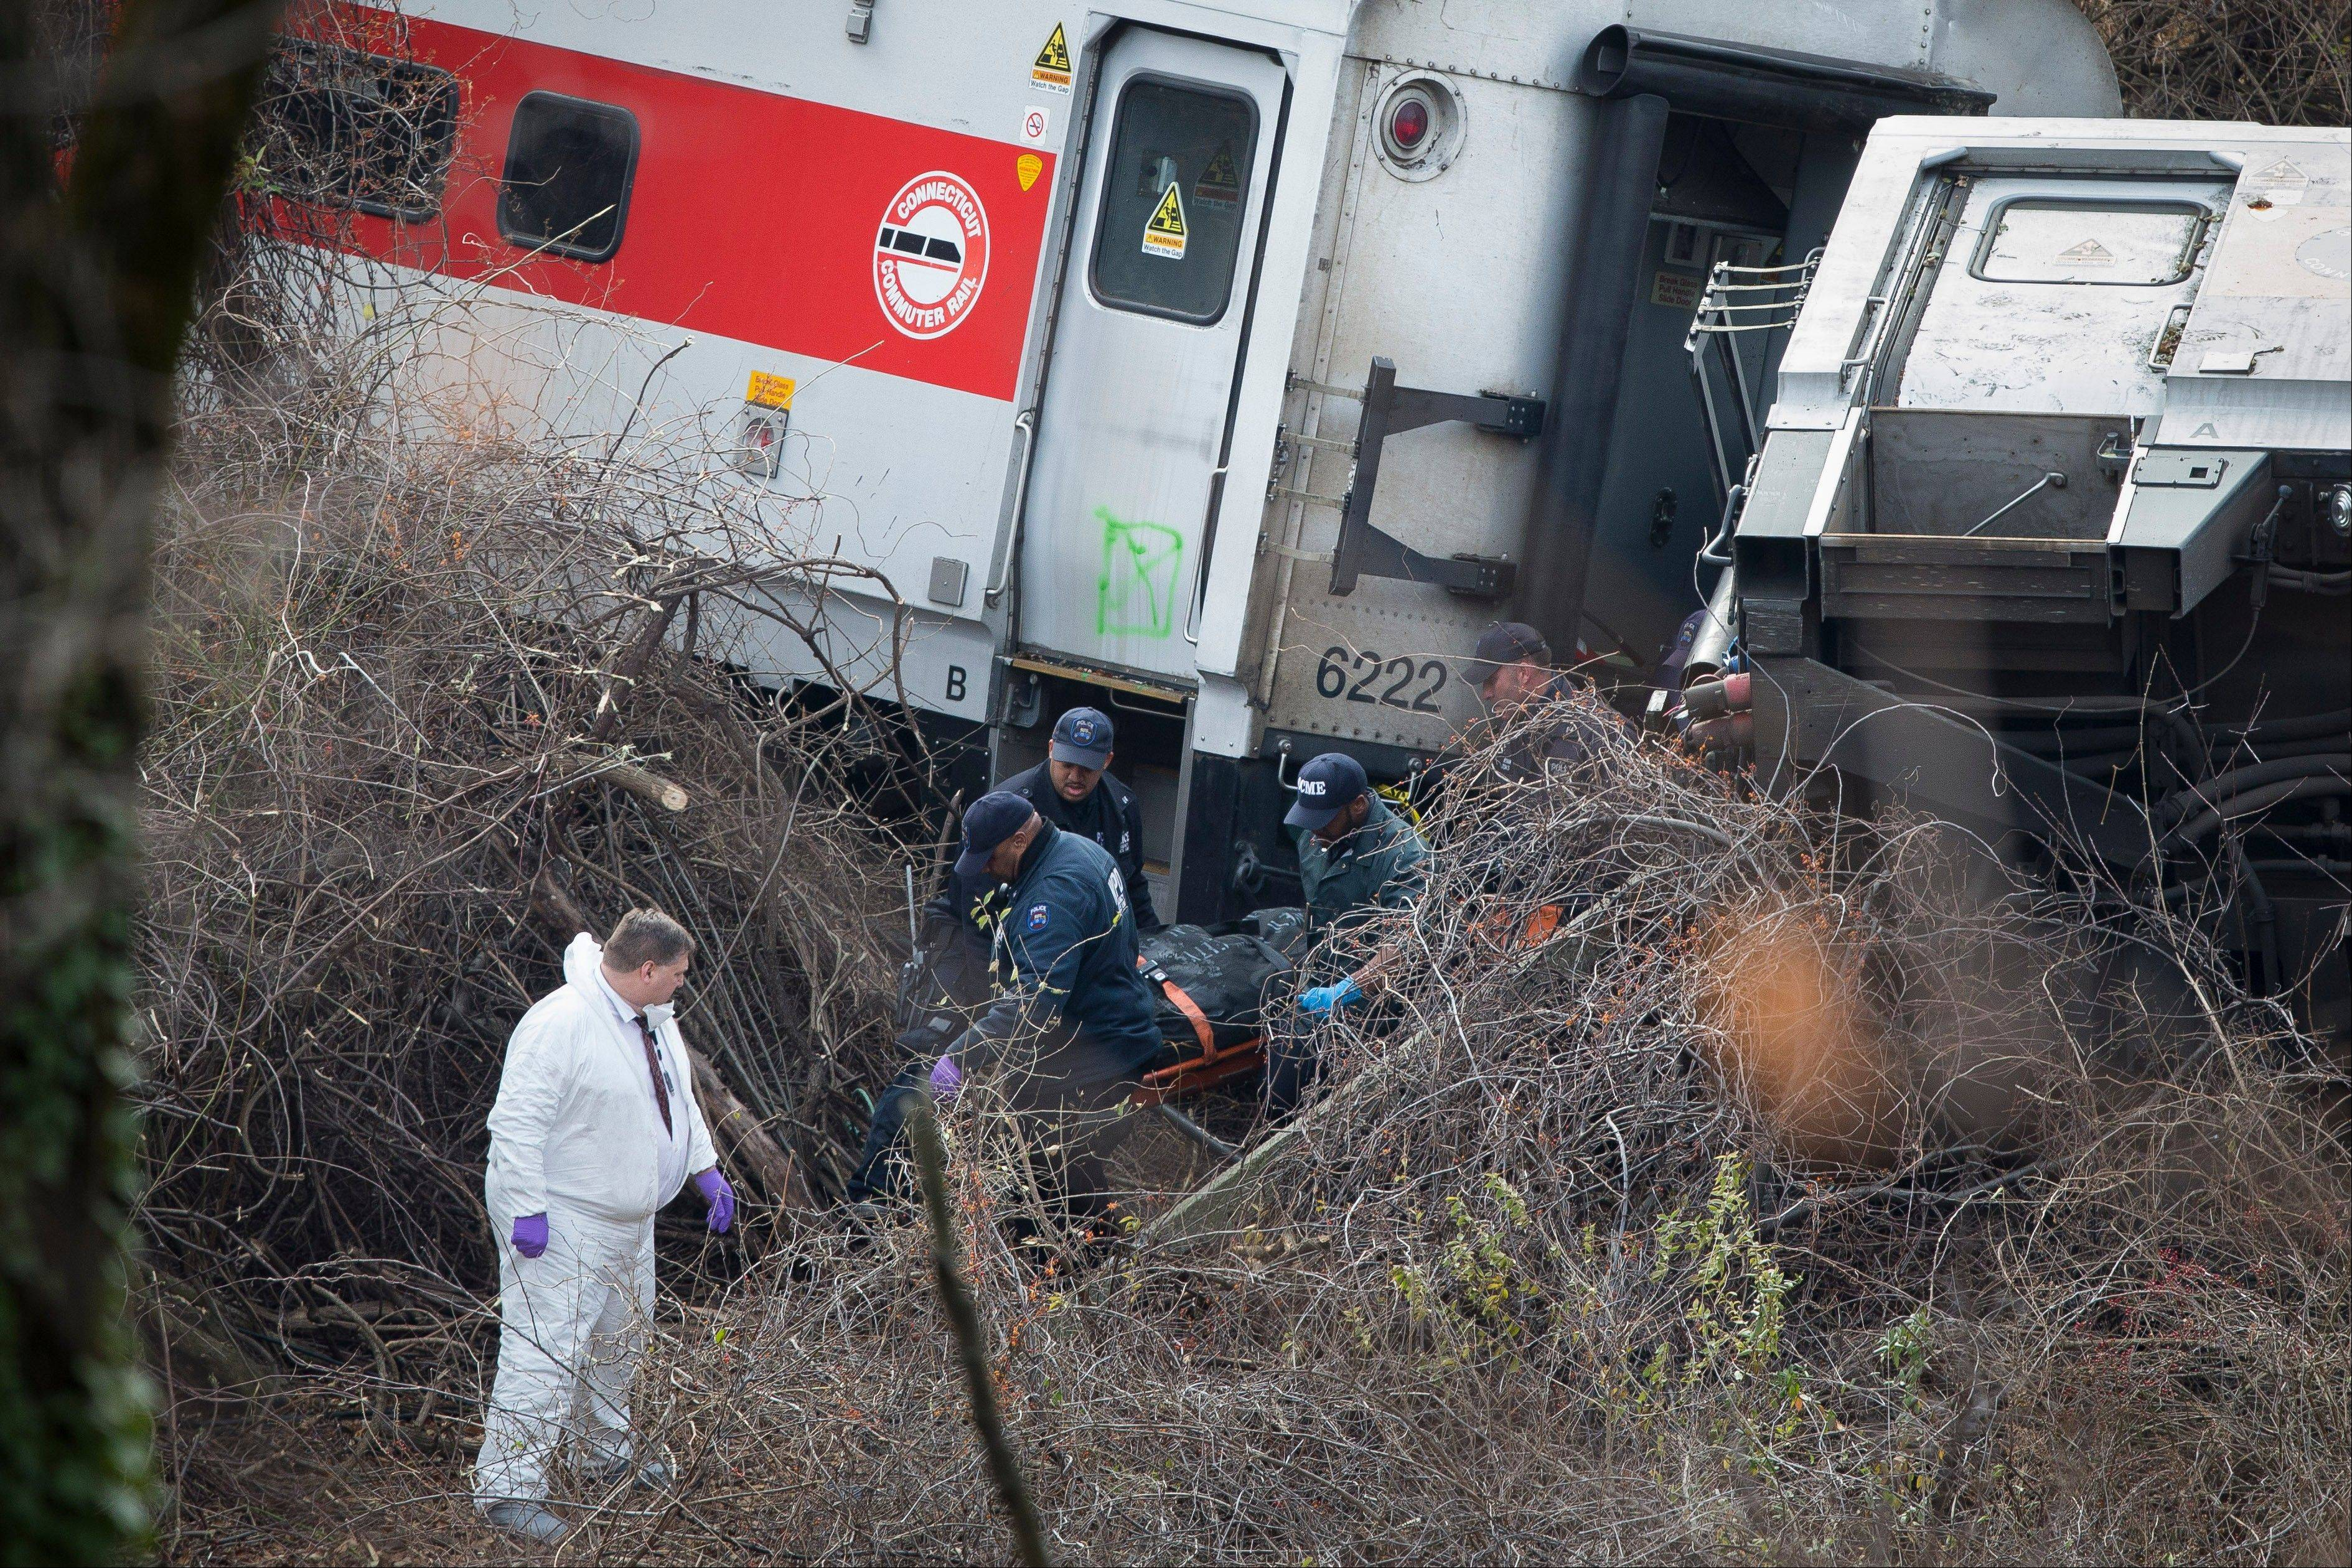 Emergency personnel remove a body from the scene of a Metro-North passenger train derailment in the Bronx borough of New York, Sunday.